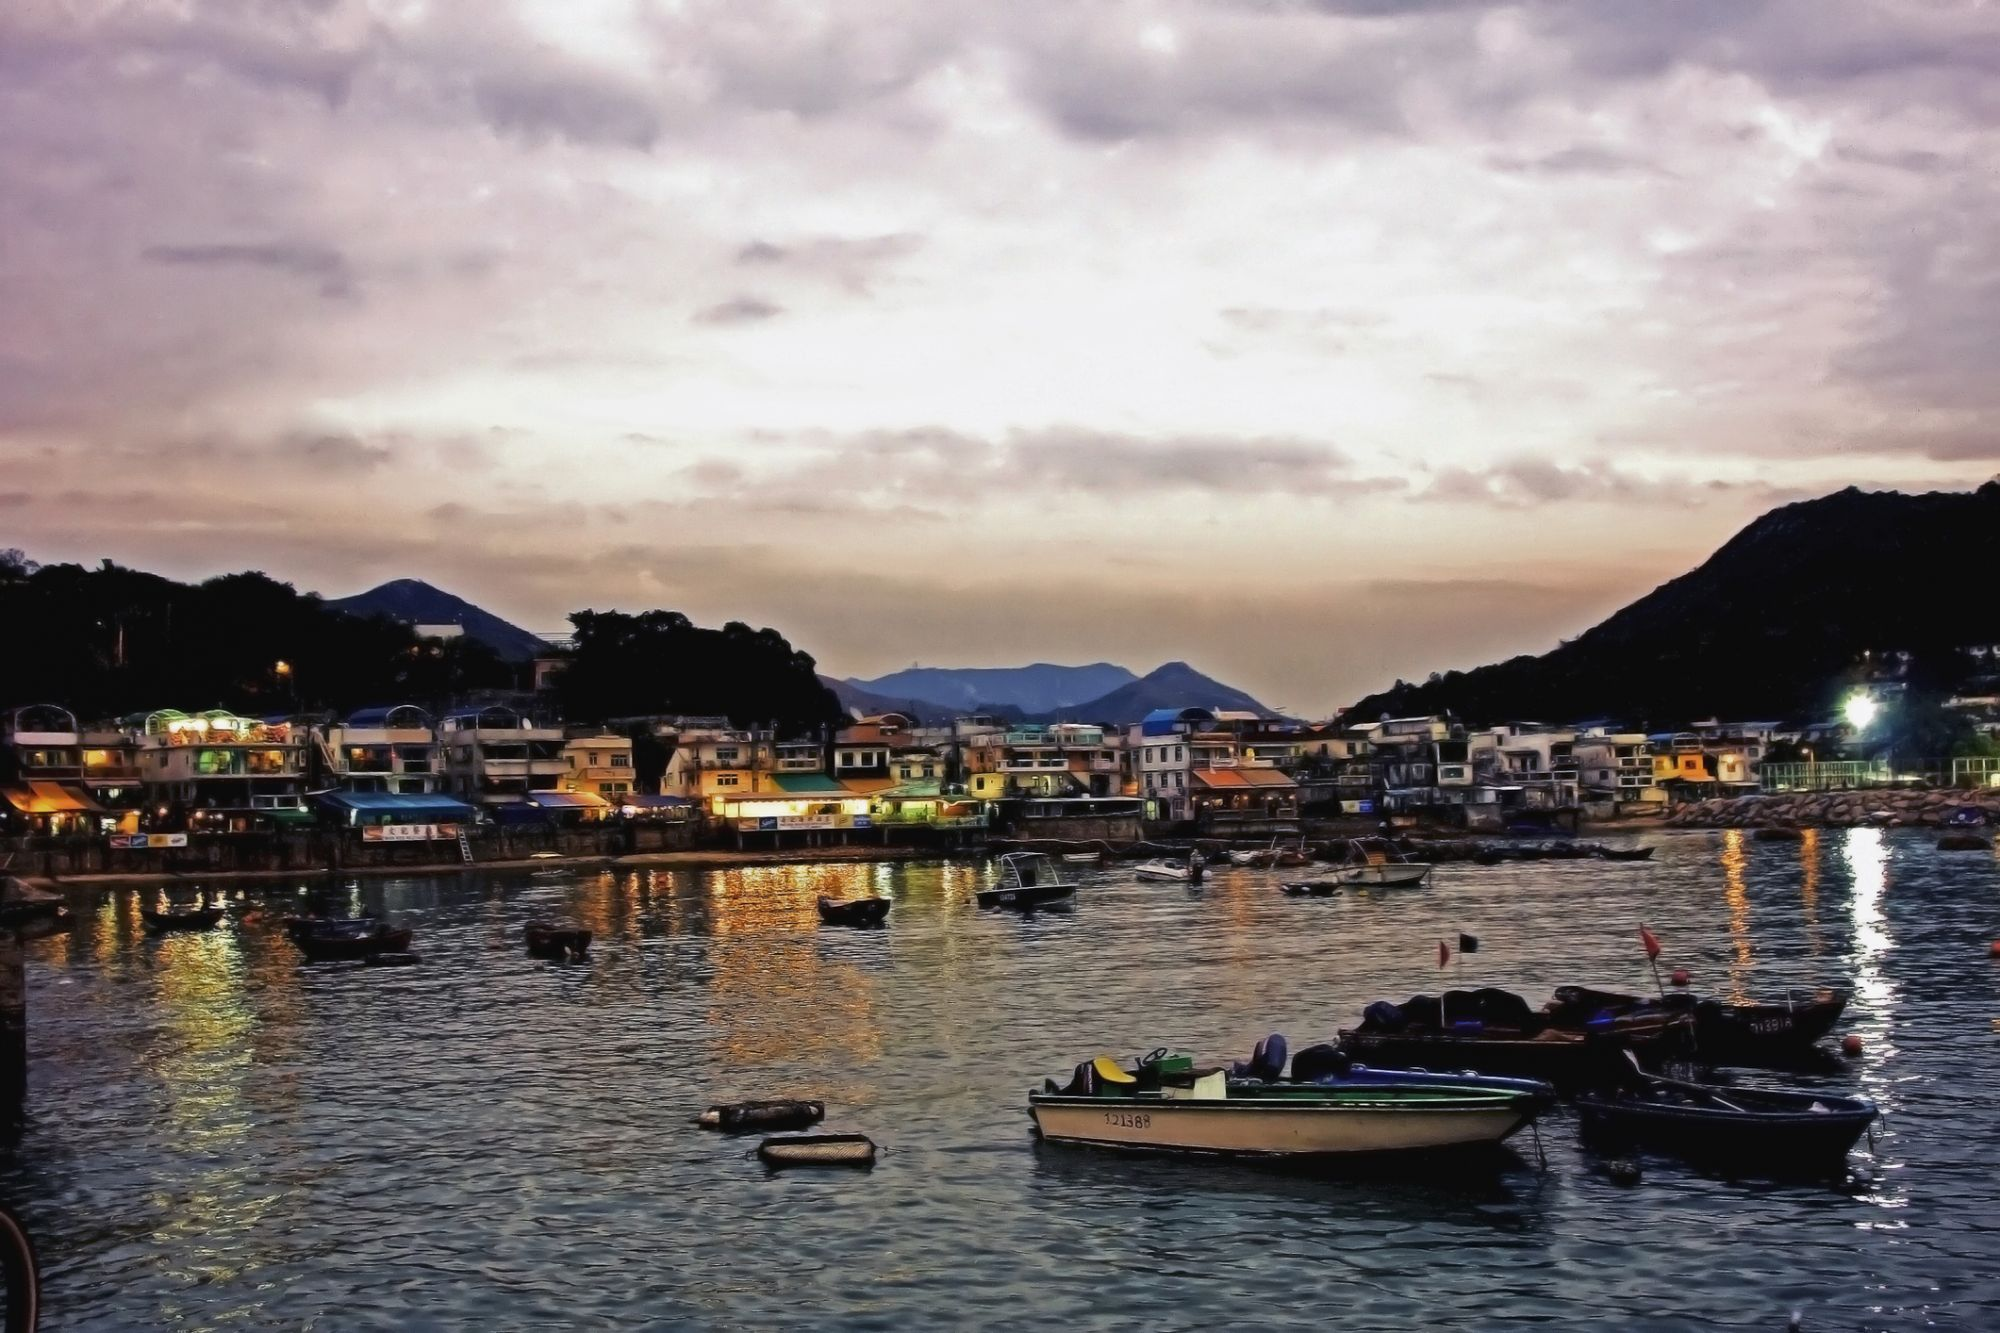 Island Guide: What To Eat, Drink And Do In Cheung Chau